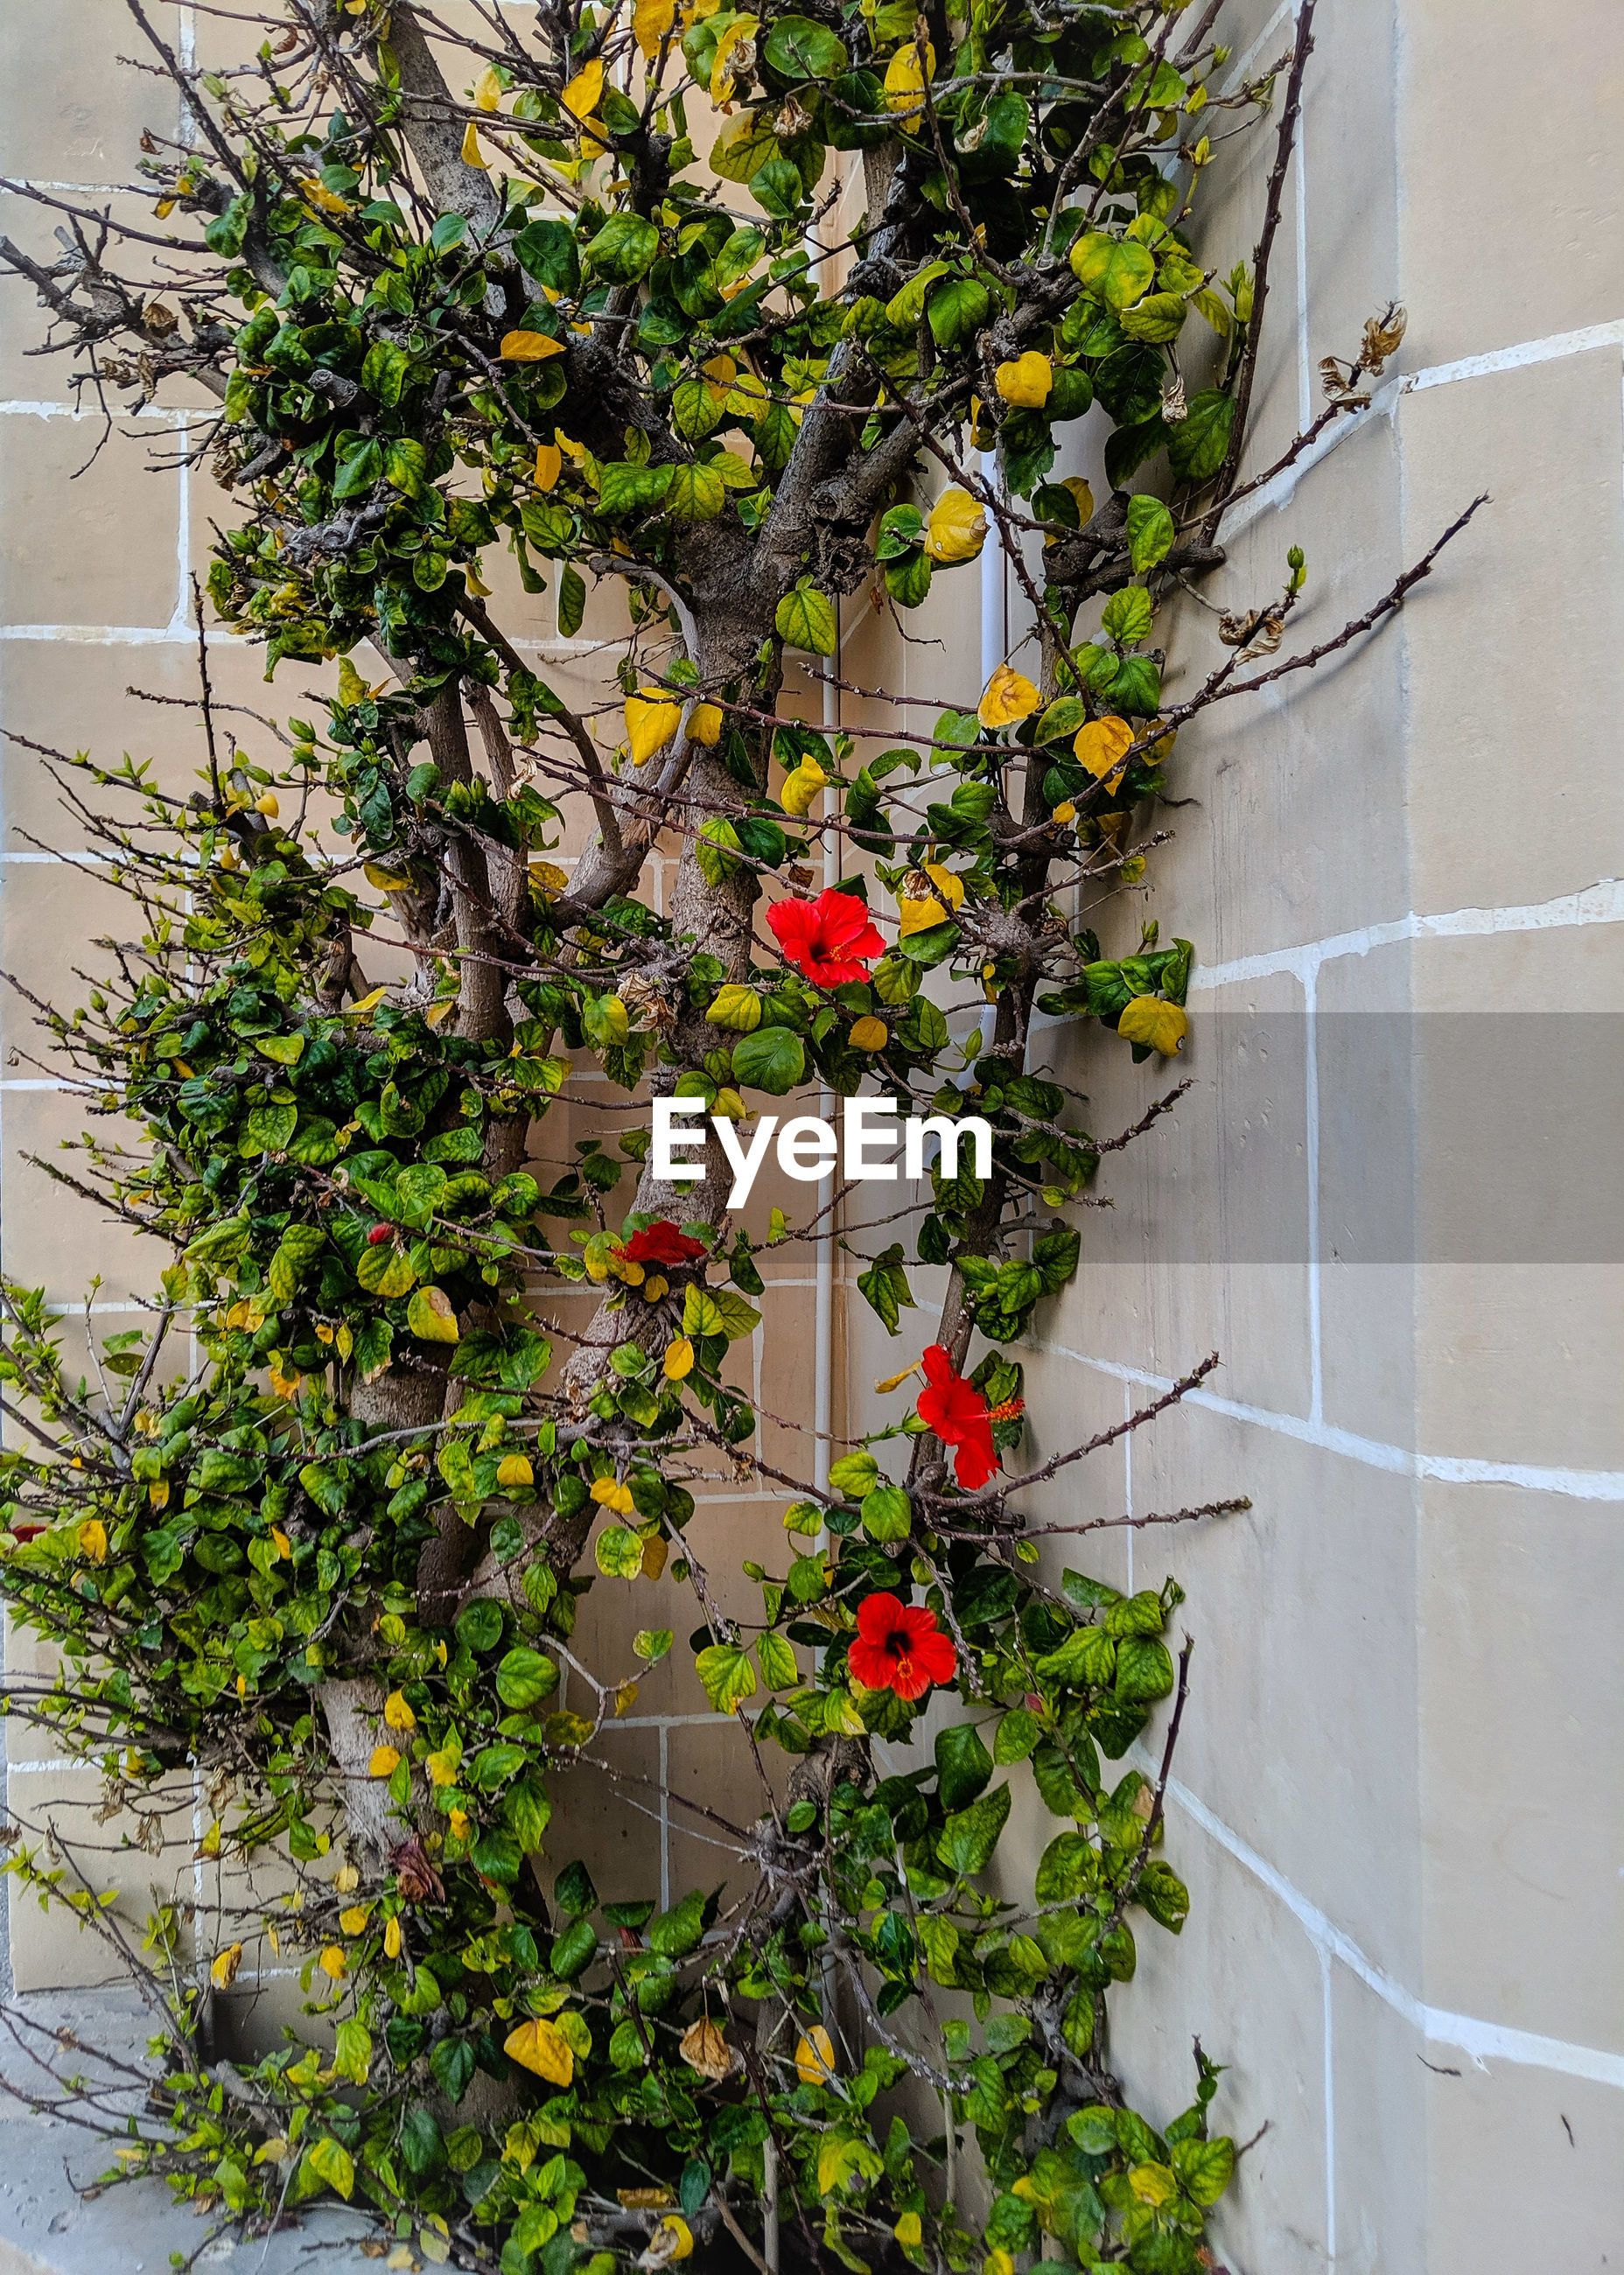 Flower plant growing on brick wall